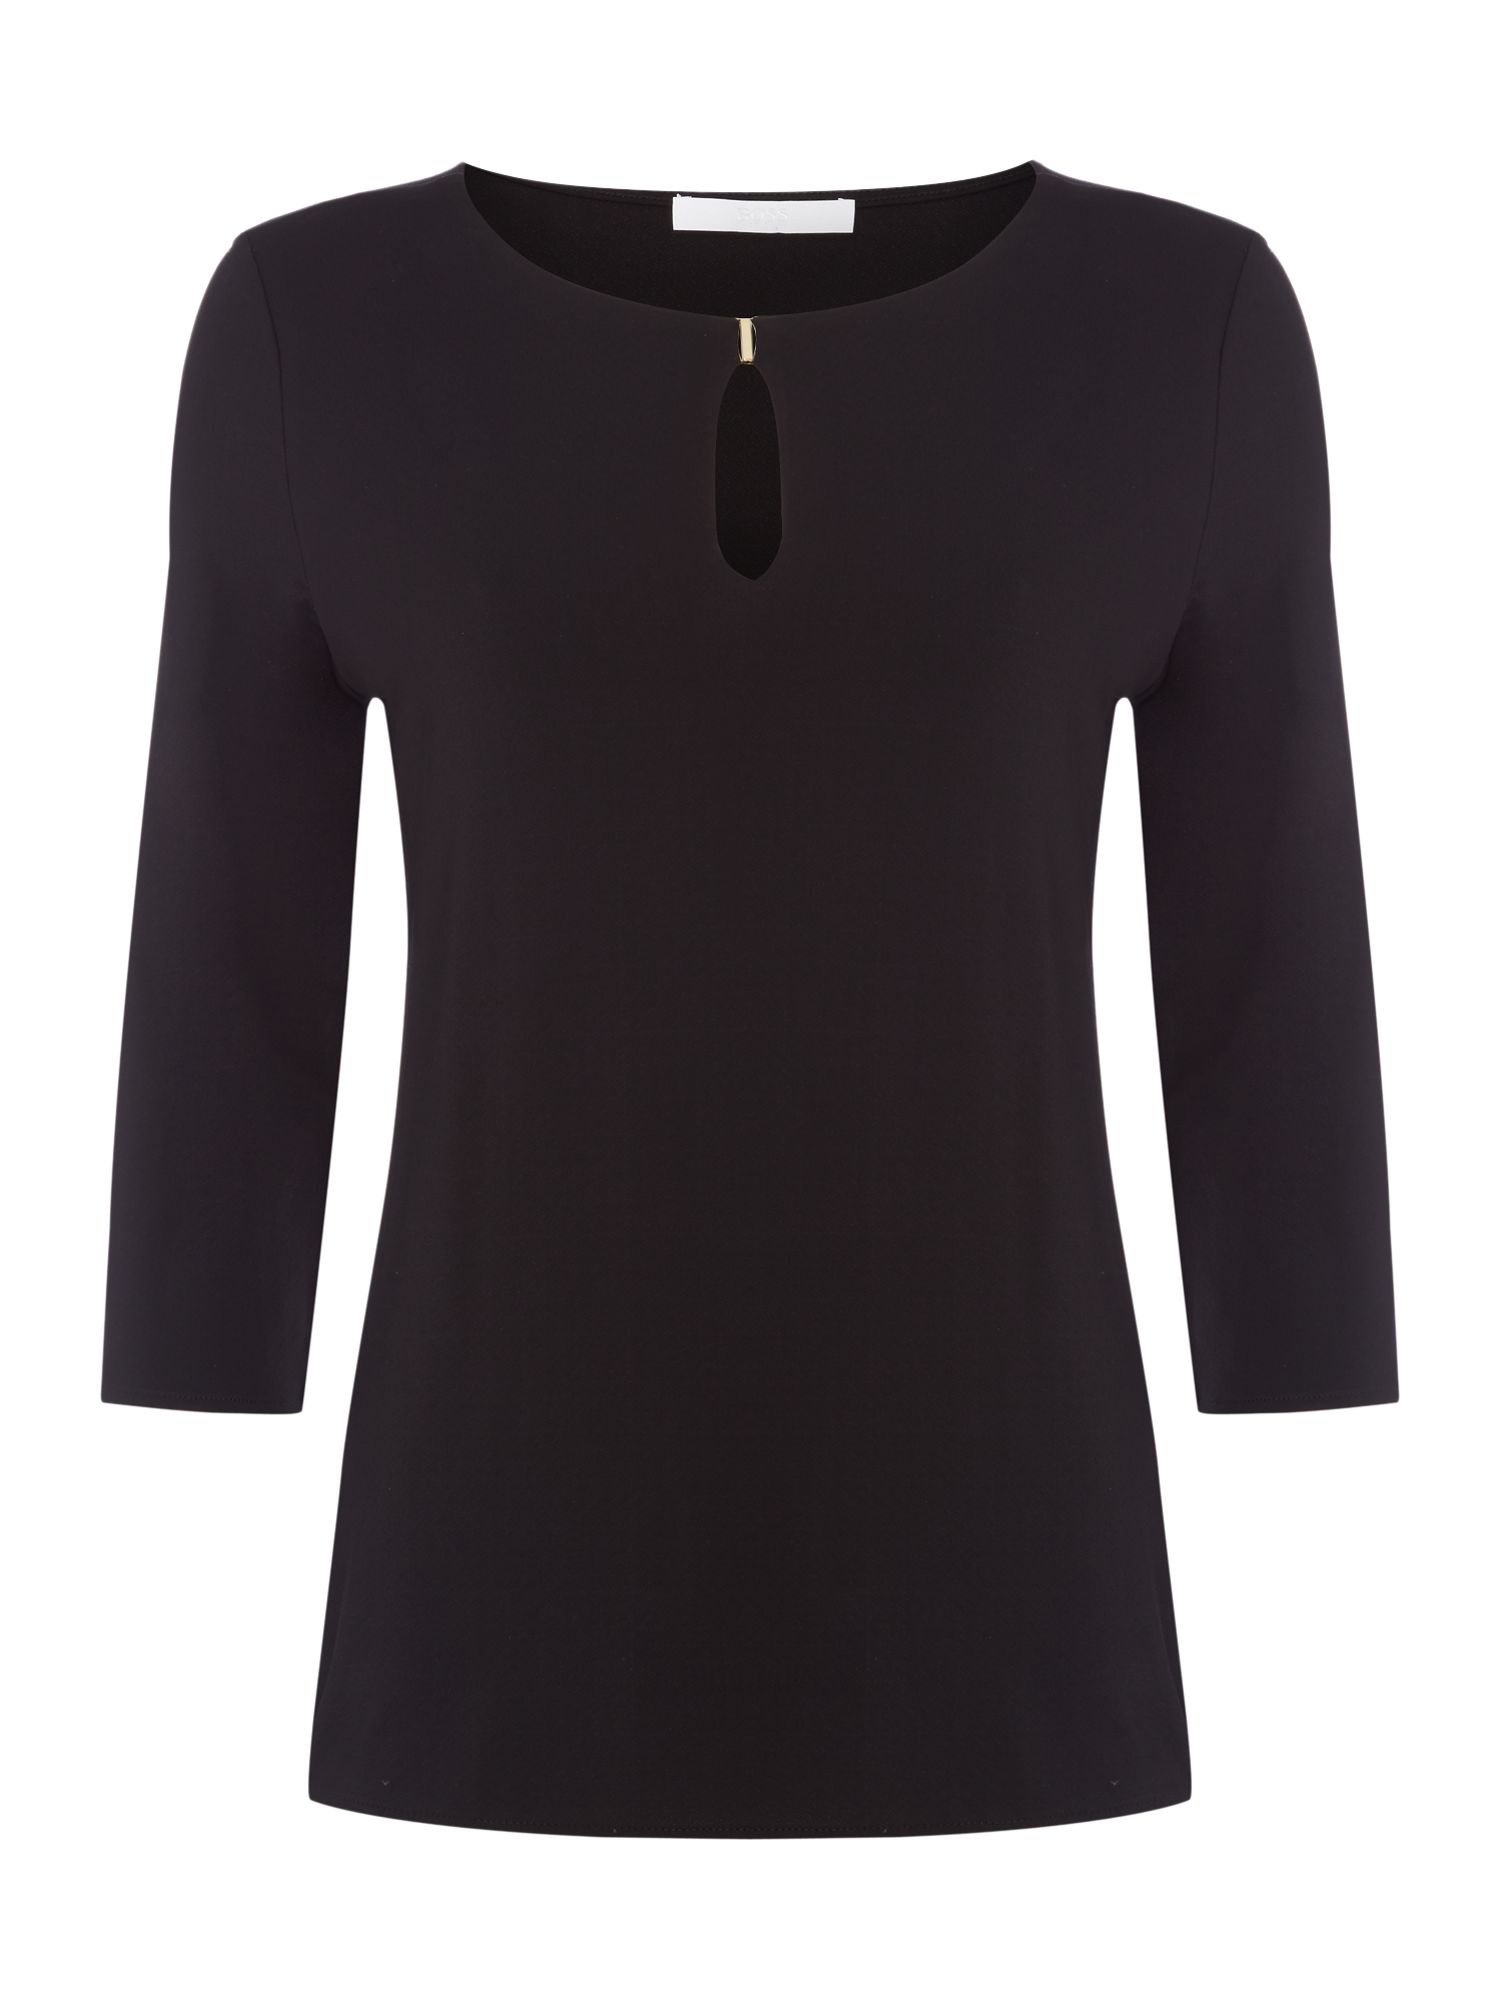 Hugo Boss Epina hardware detail top, Black